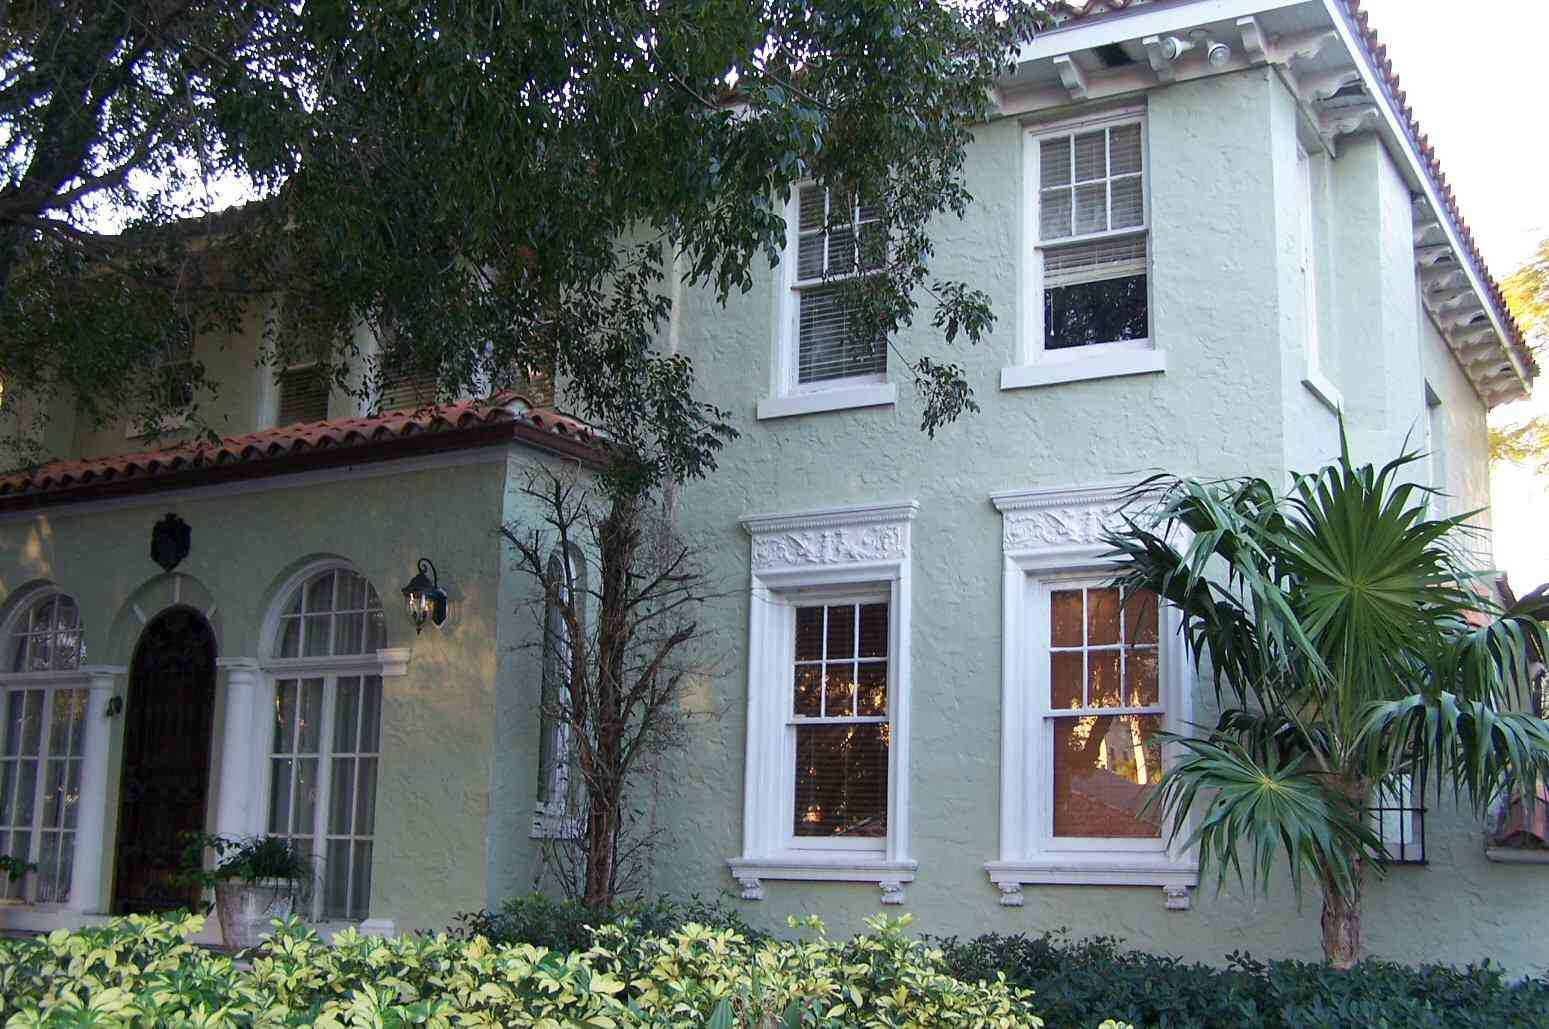 Pale Green Stucco White Trim Two Story Overhanging Eaves Front Entry With